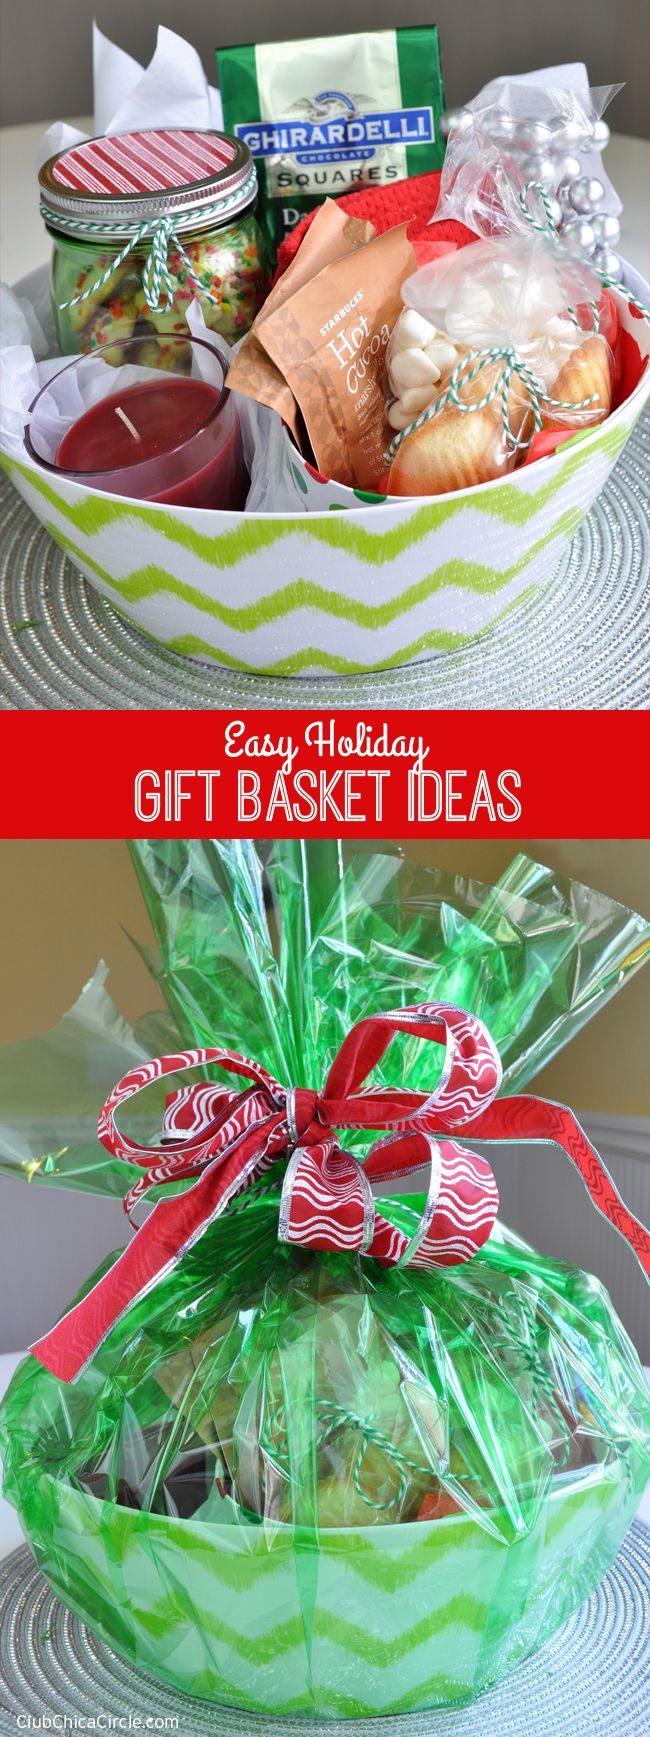 Easy Holiday Gift Basket Ideas + Giveaway | Club Chica Circle ...